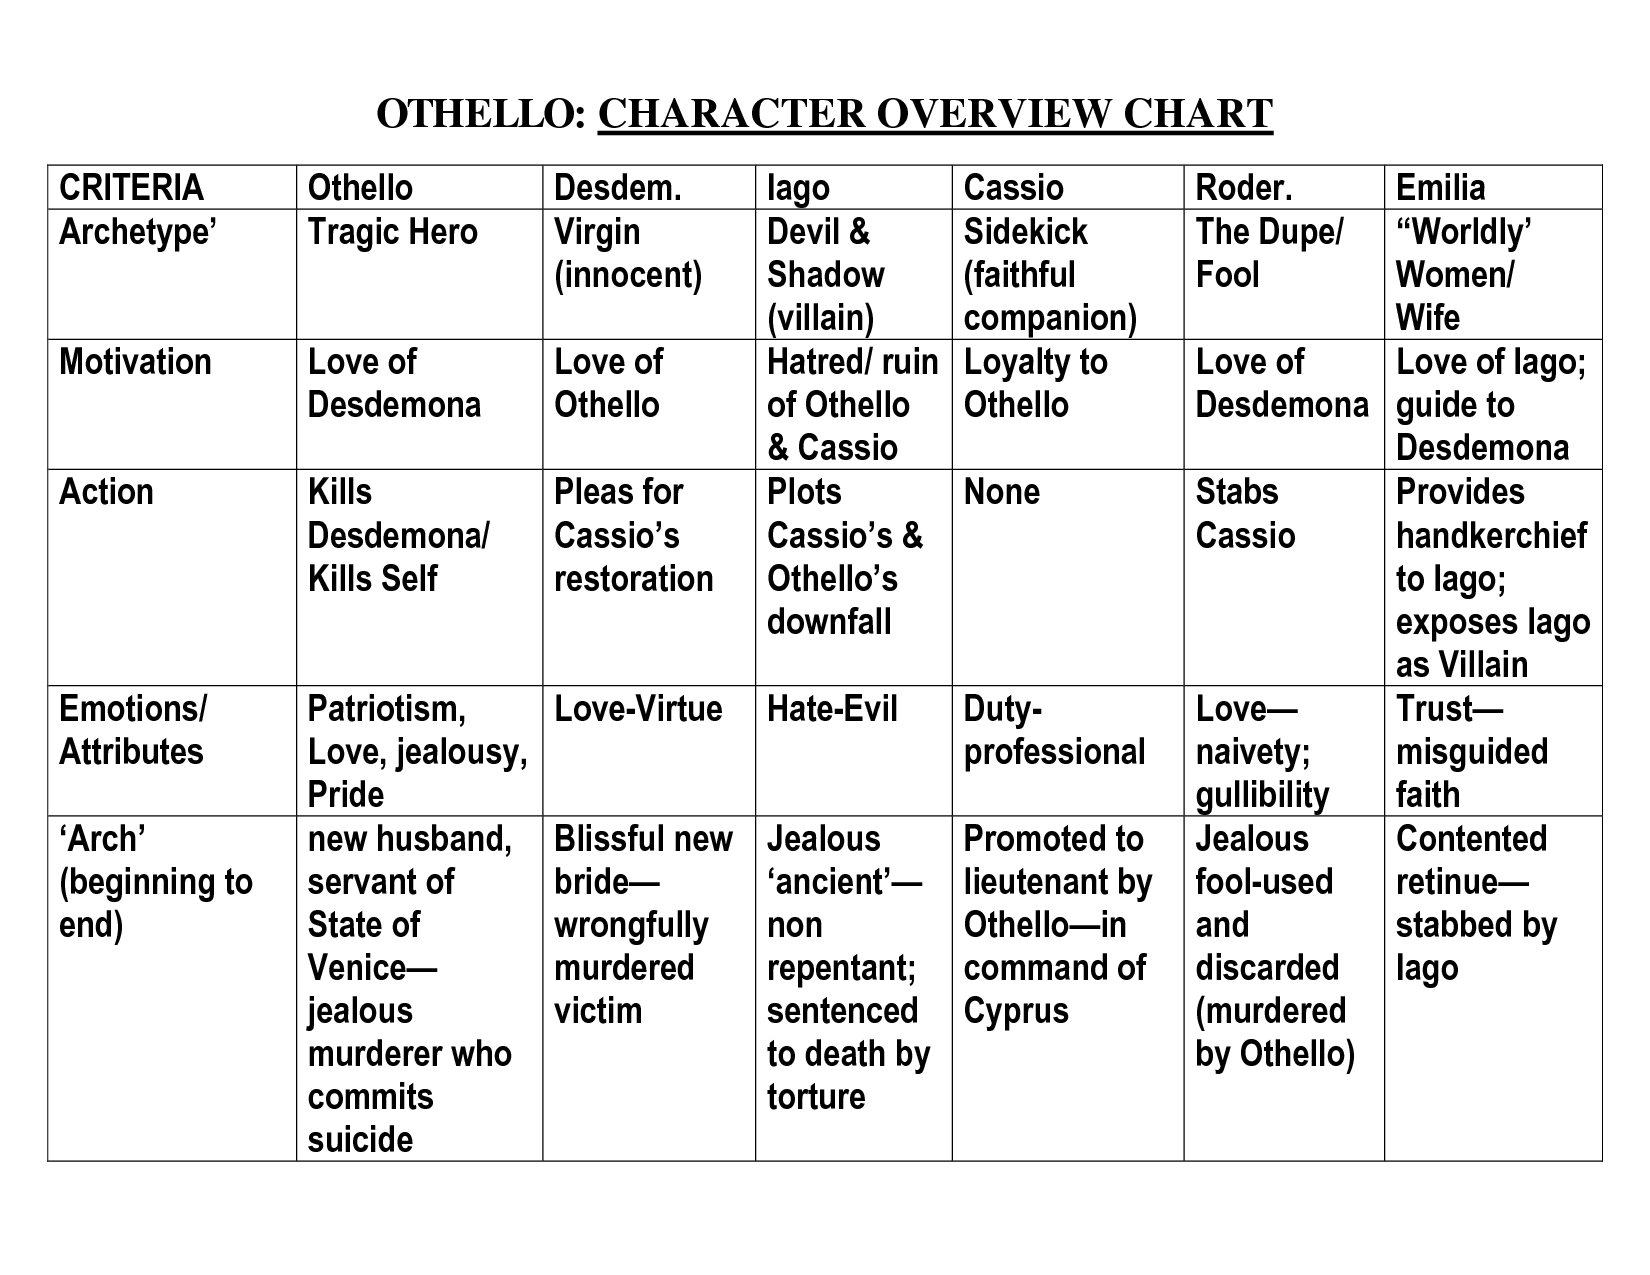 Othello (character) - Alchetron, The Free Social Encyclopedia